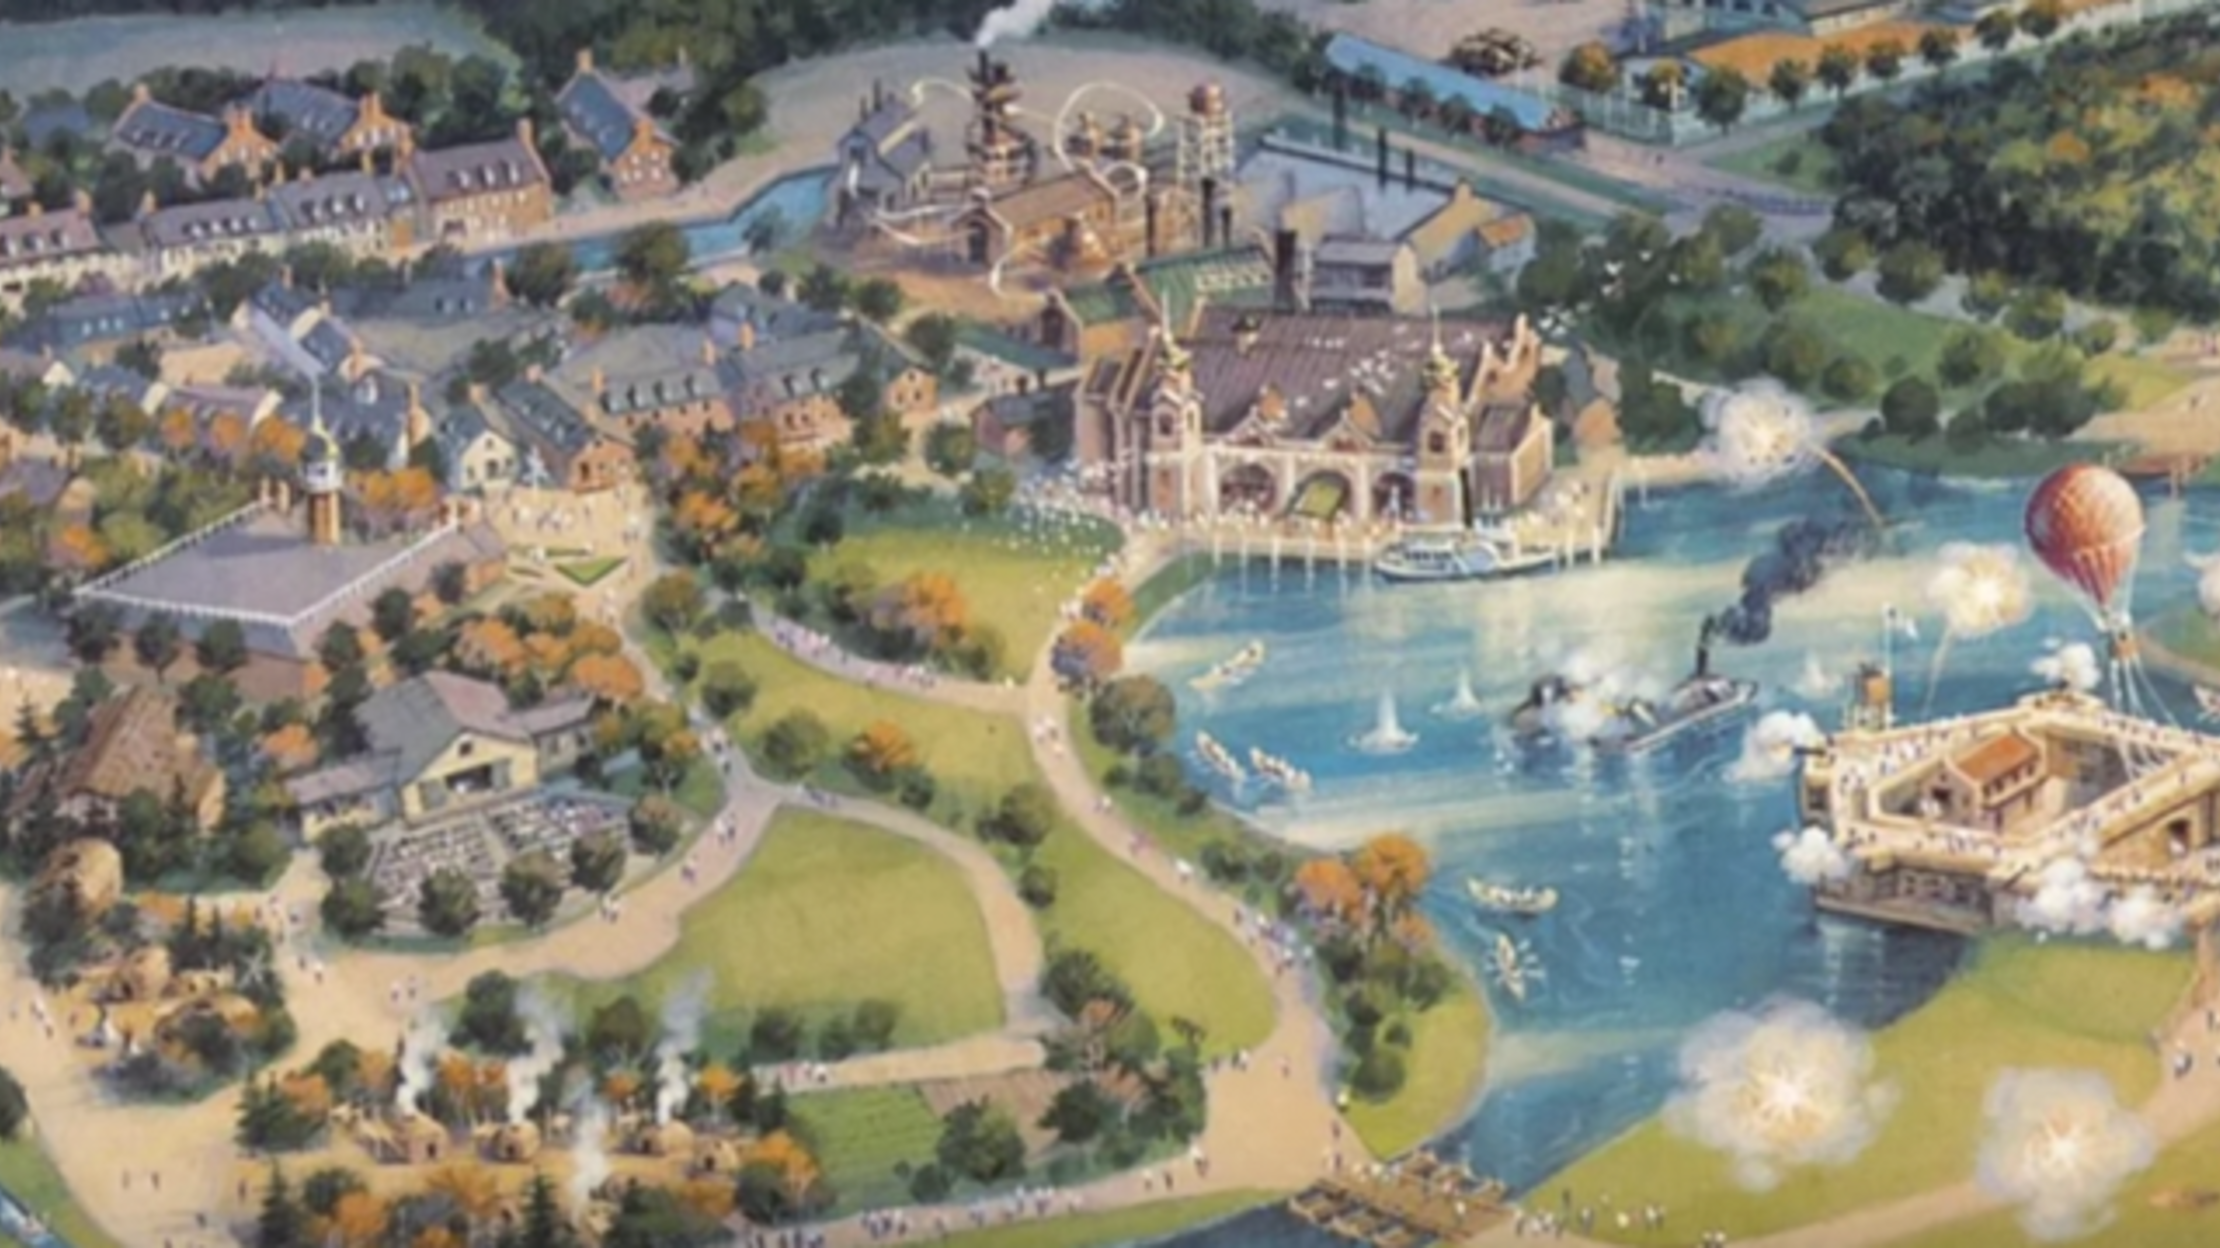 The Story of Disney's Abandoned America Theme Park